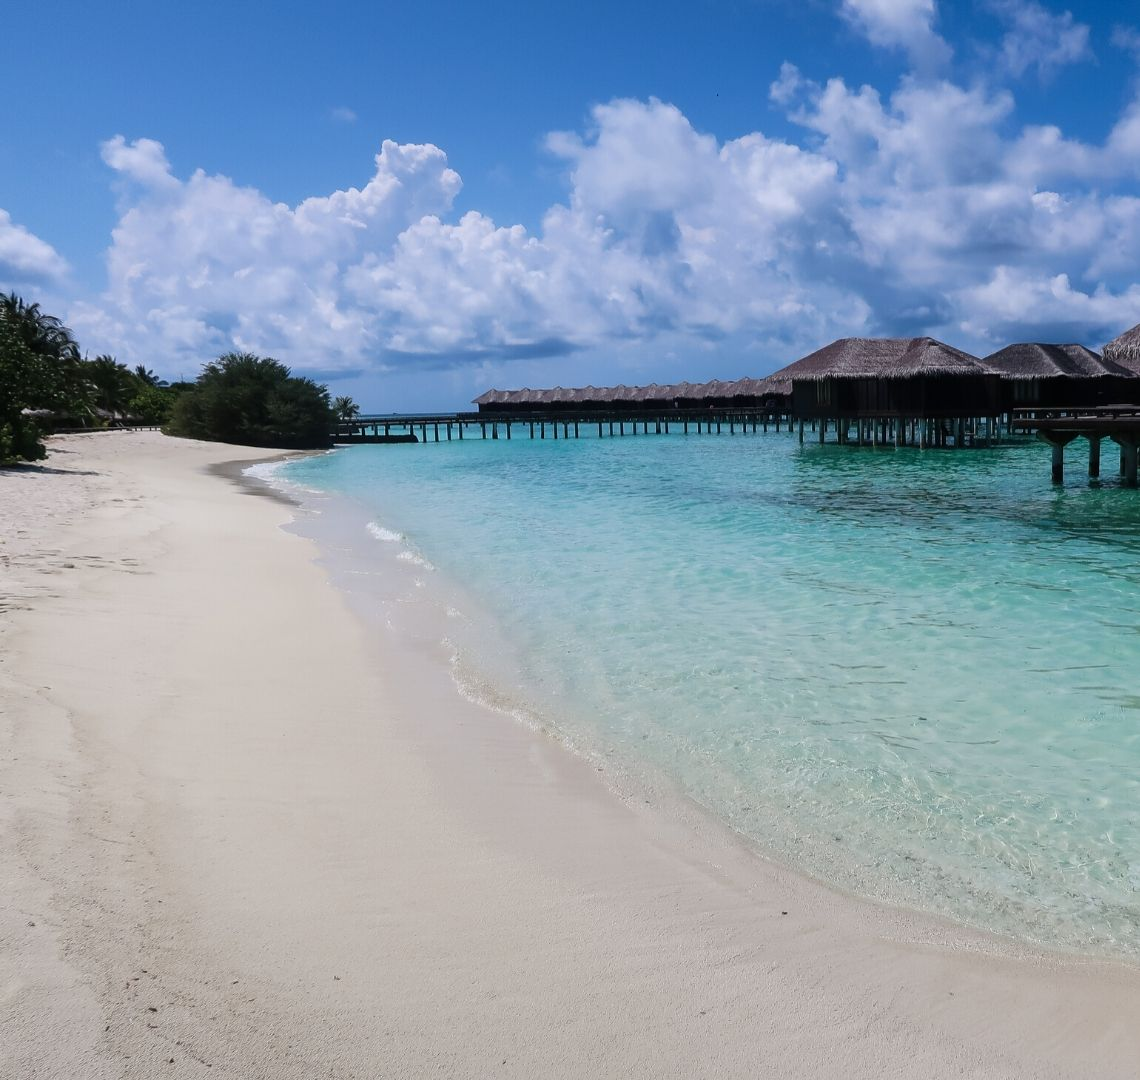 Maldives Activities Beach - a white sandy beach is on the left of the image, clear turquoise shallow water is in-between the beach and the water bungalows on stilts on teh right